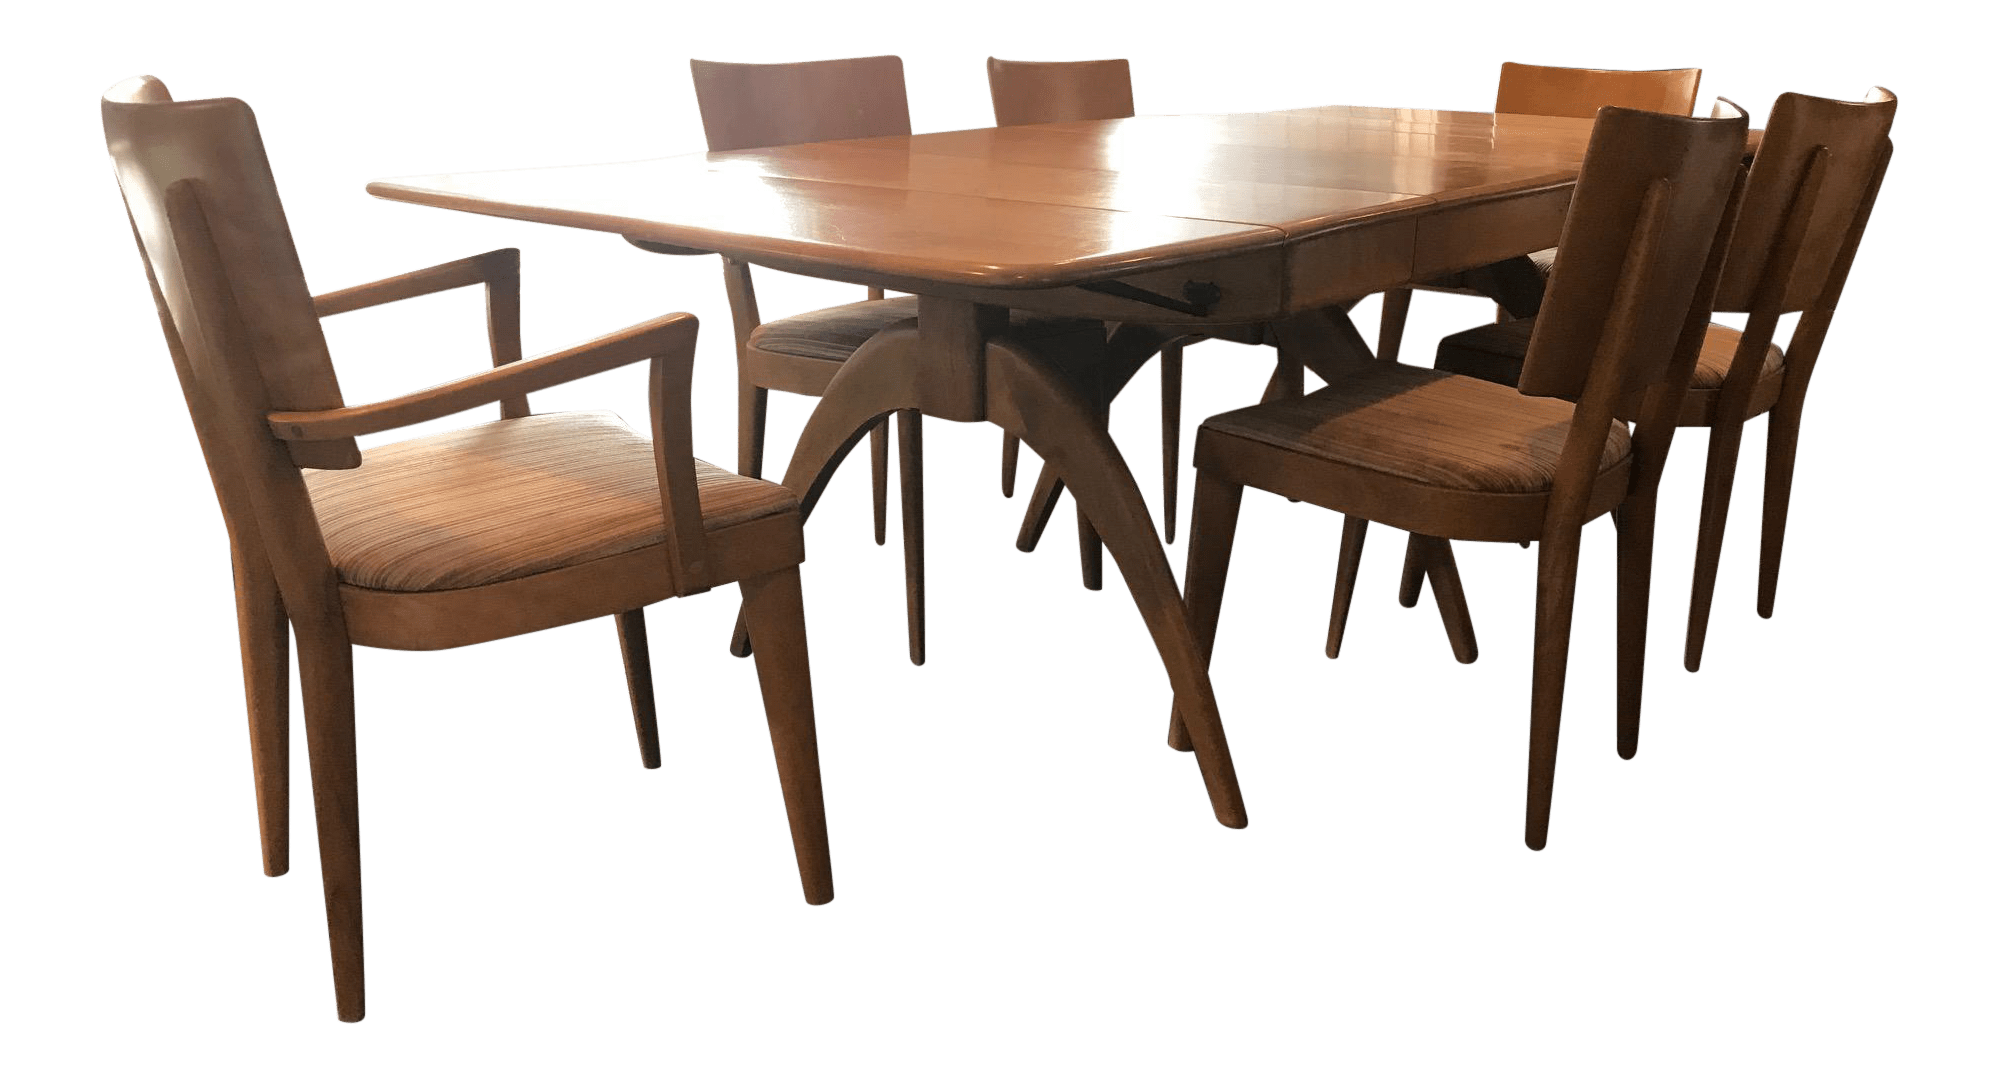 Heywood Wakefield Dining Chairs Heywood Wakefield Dining Table Chairs